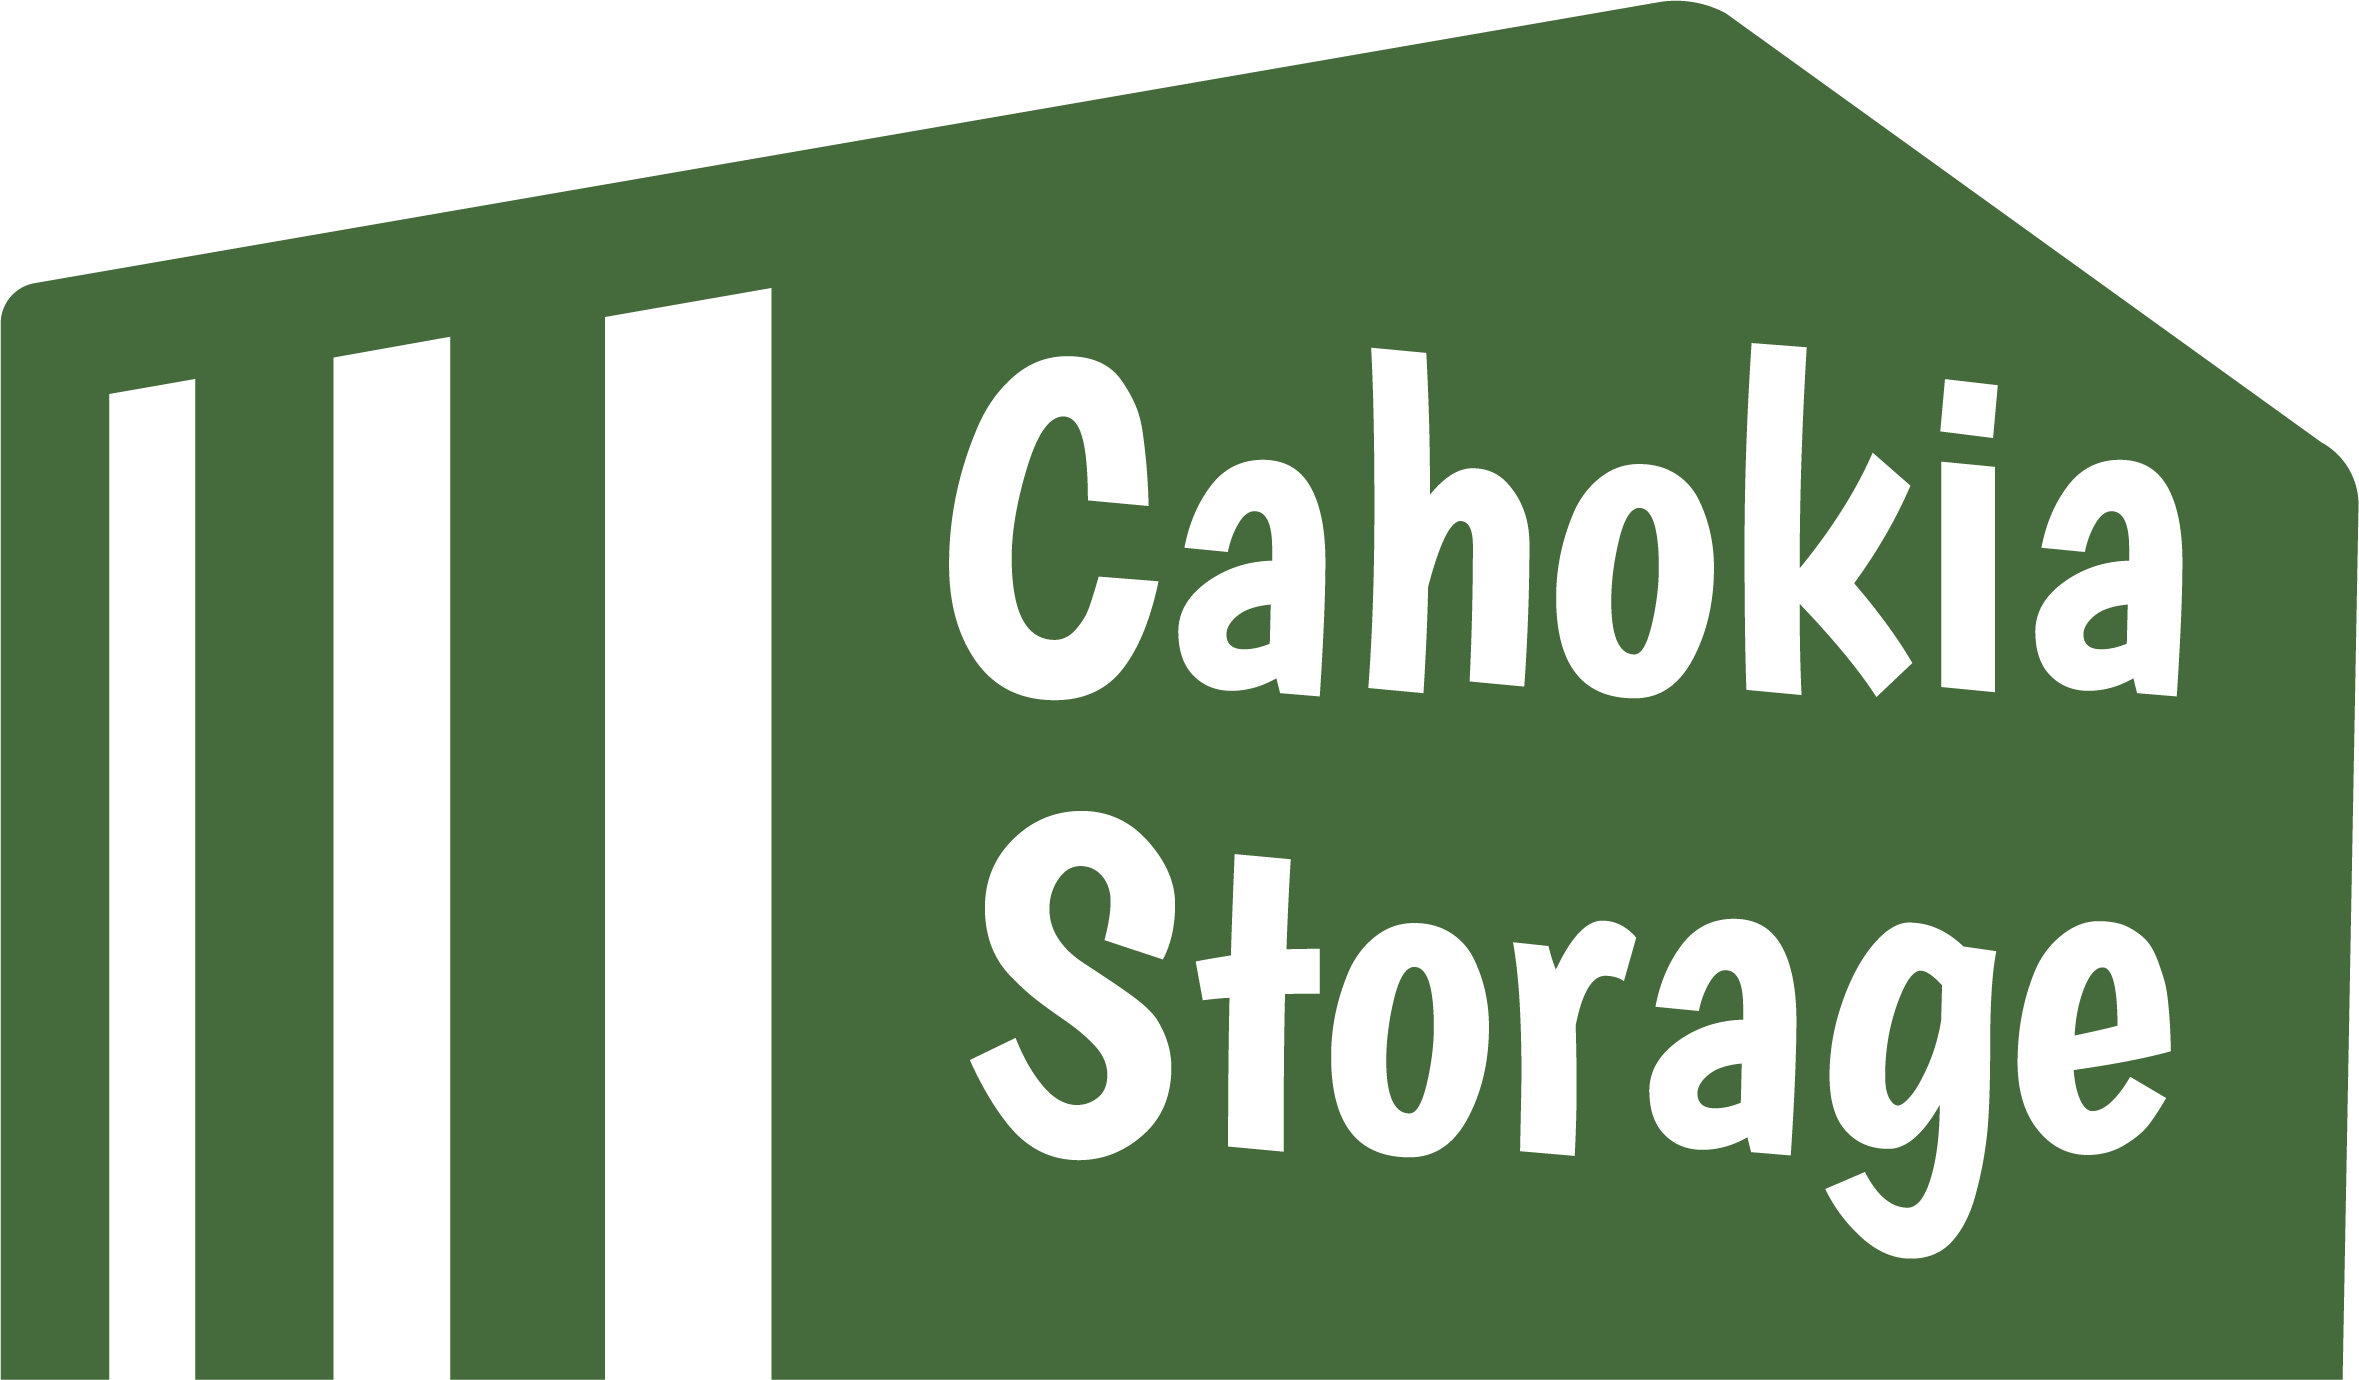 Cahokia Storage Center